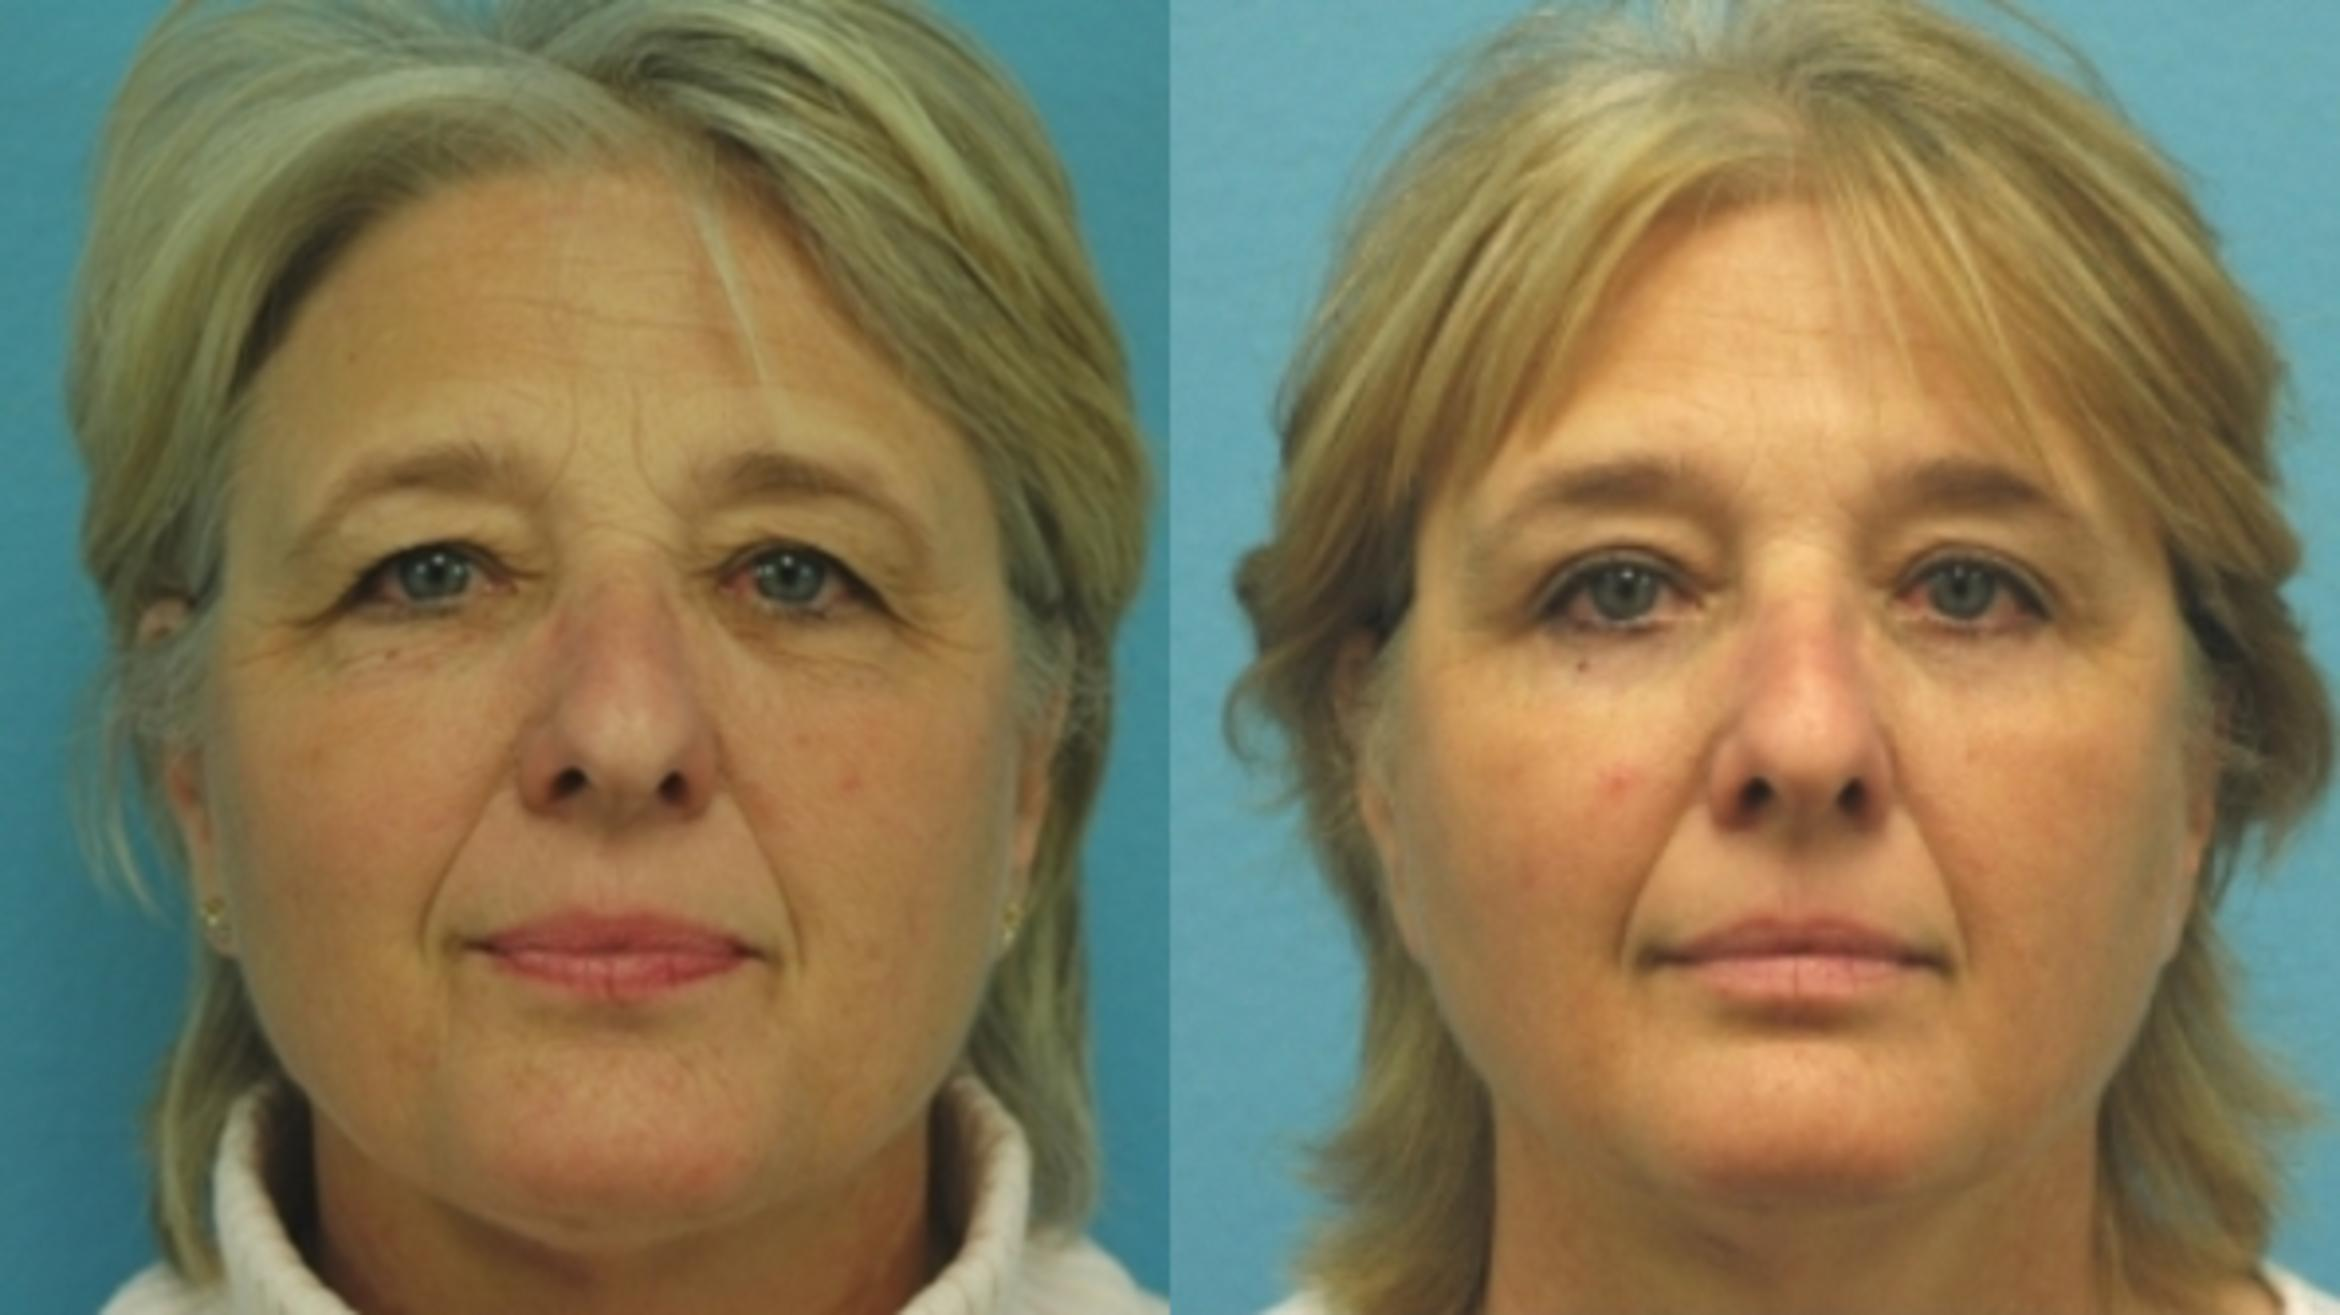 Brow Lift Before & After Photo | San Francisco, CA | Kaiser Permanente Cosmetic Services